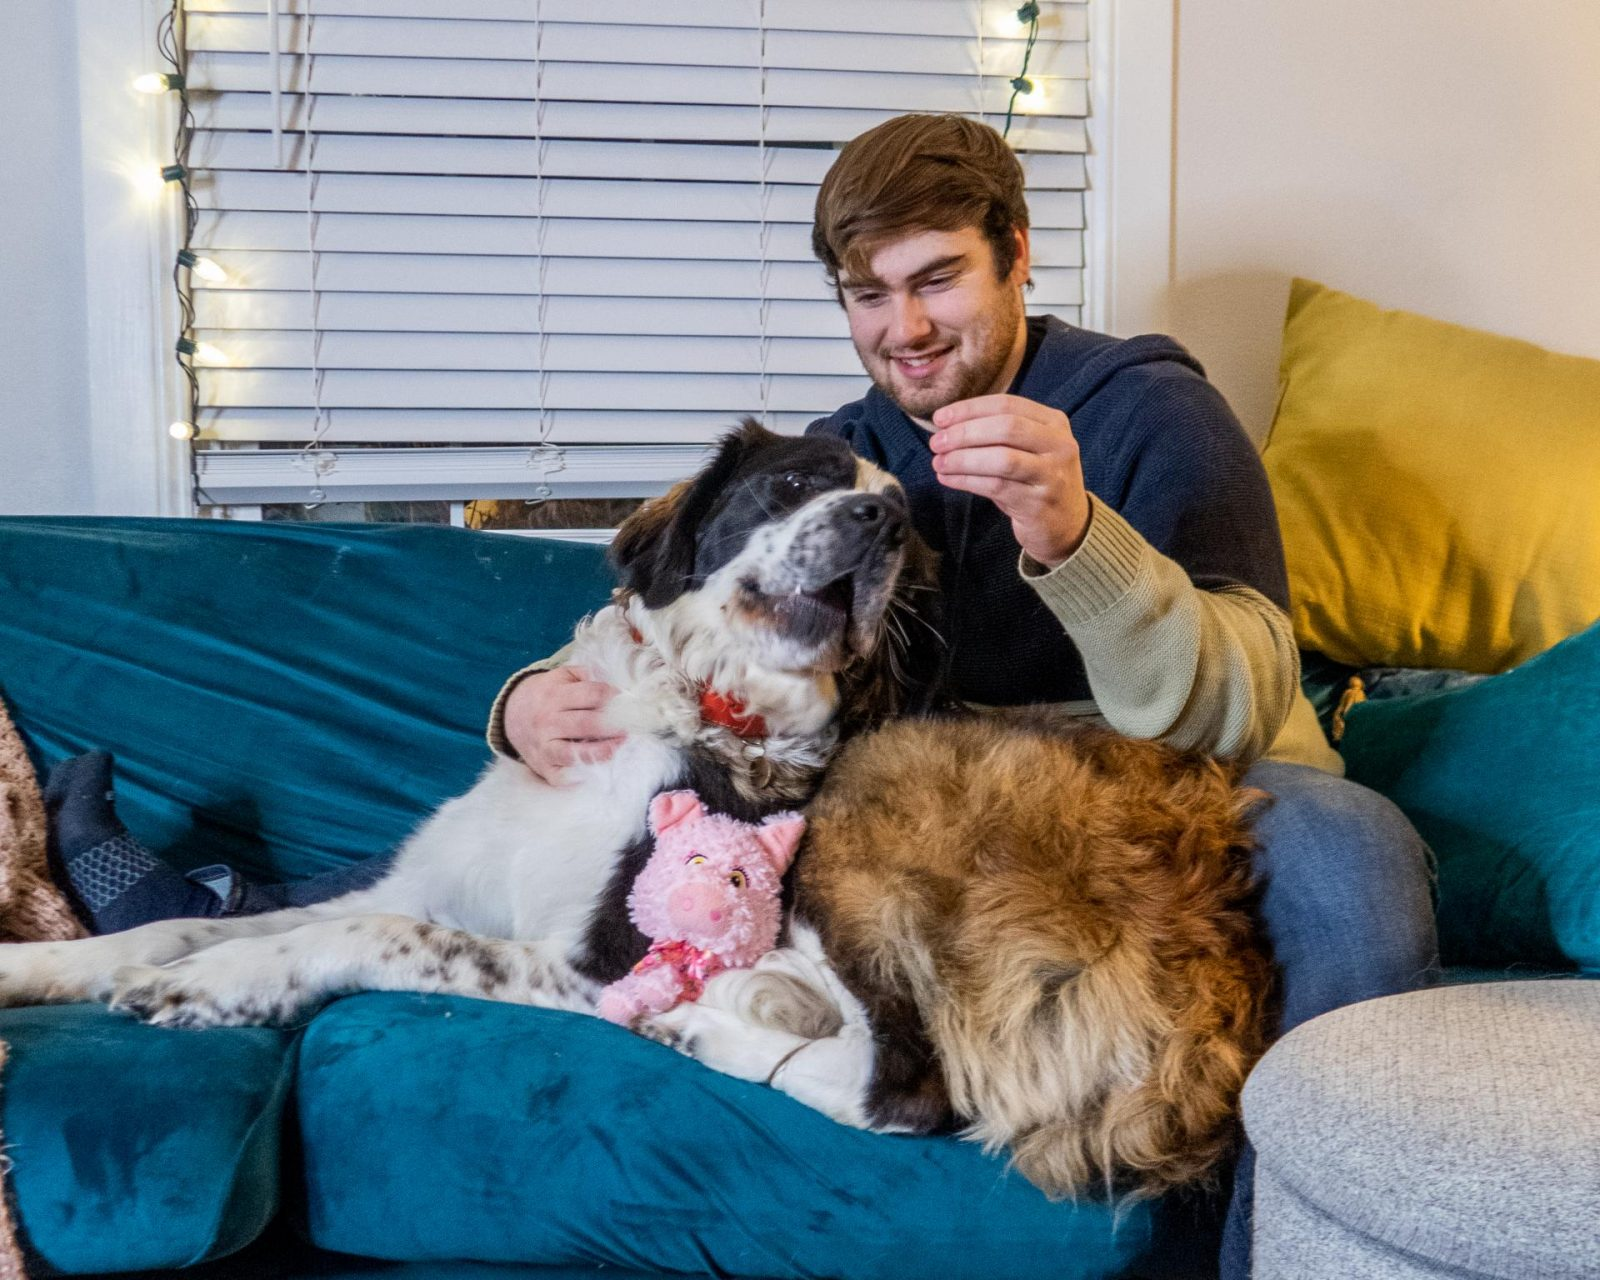 Maisie the Saint Bernard is cuddling on the couch with her dad, Garrett, who is offering her a treat. Maisie is also snuggling her favorite piggy toy.